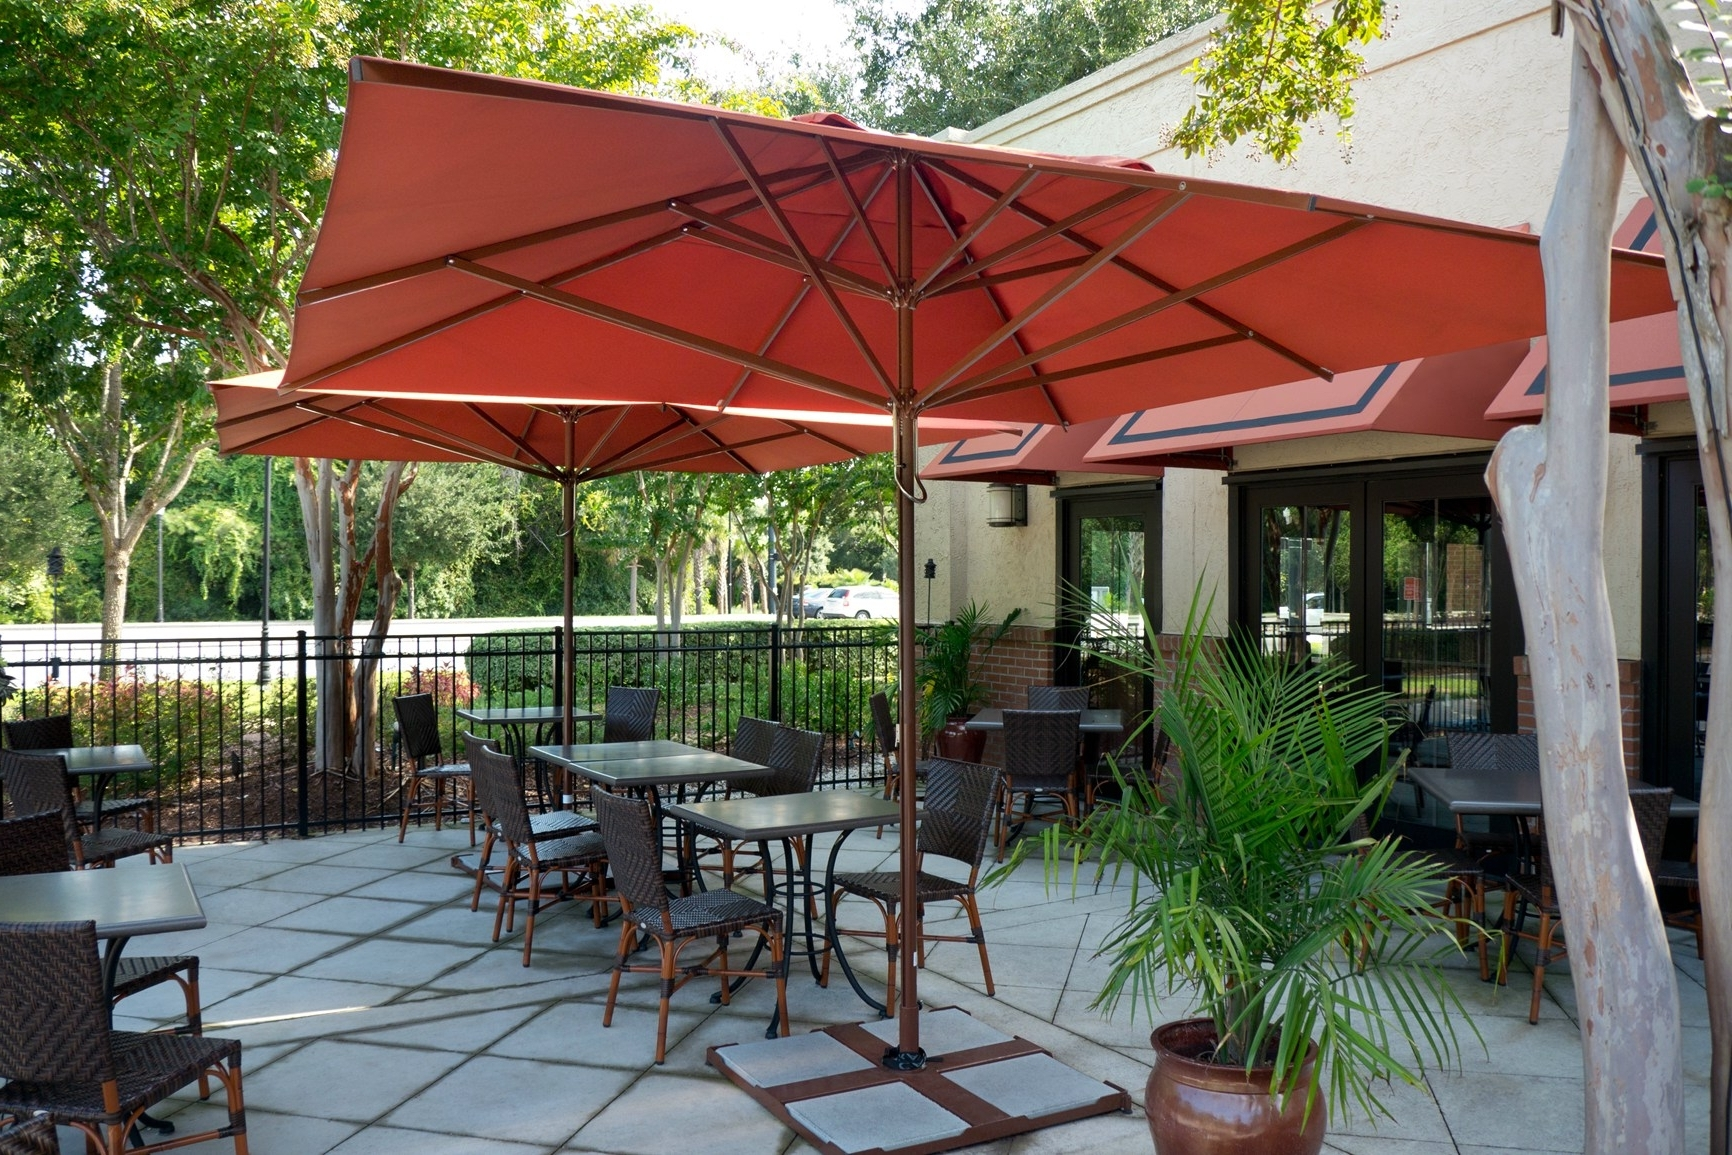 Patio Umbrellas With White Pole With Regard To Well Known Patio Red Umbrellas Umbrella With White Pole Offset Within Newest (View 18 of 20)